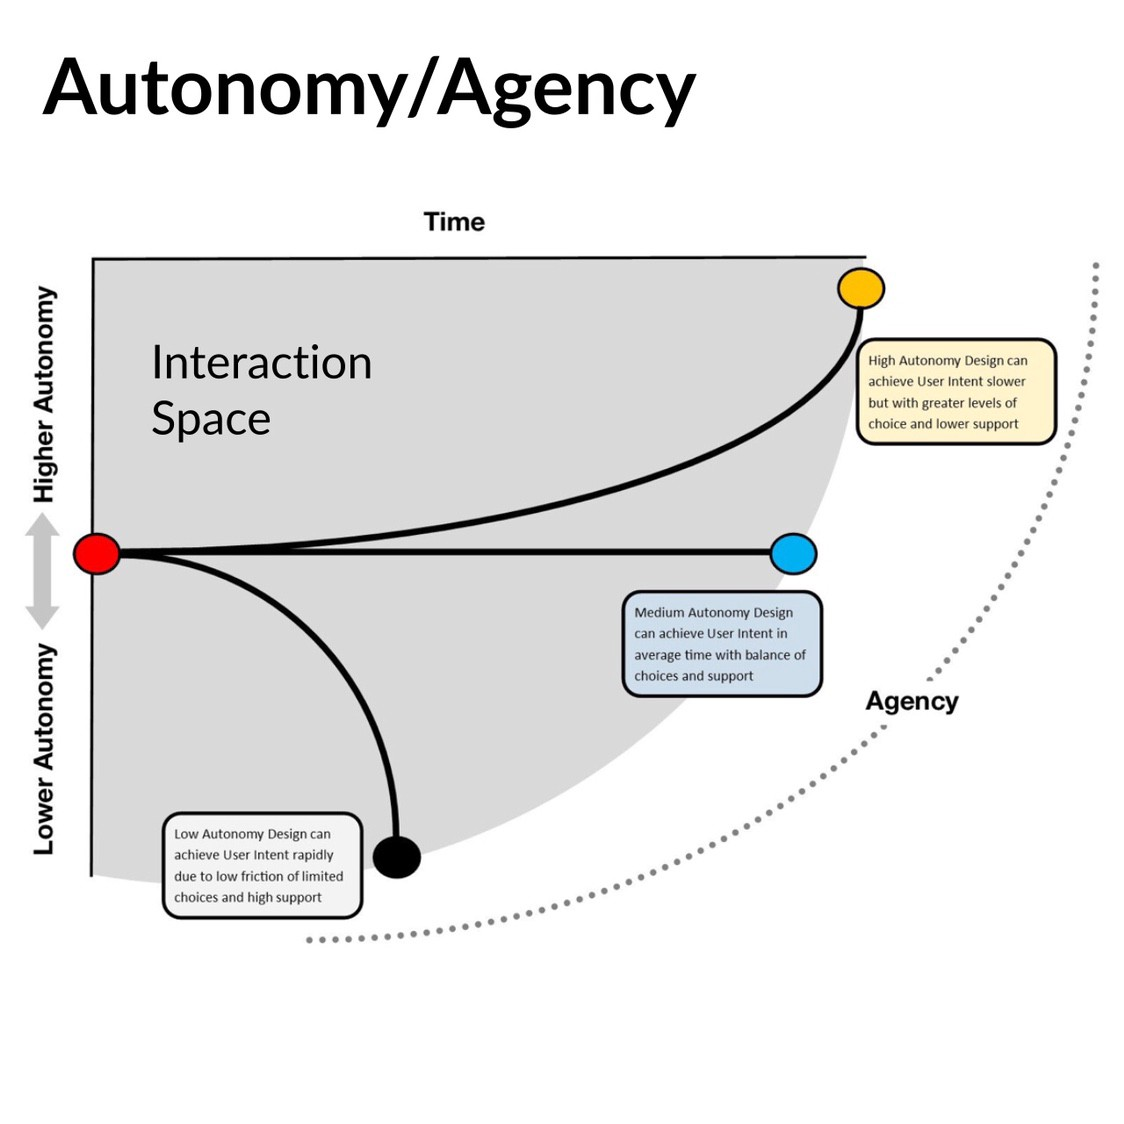 More formal diagram showing how High and Low automony deisgn differ in terms of not what is achieved but the indivisual sense of control